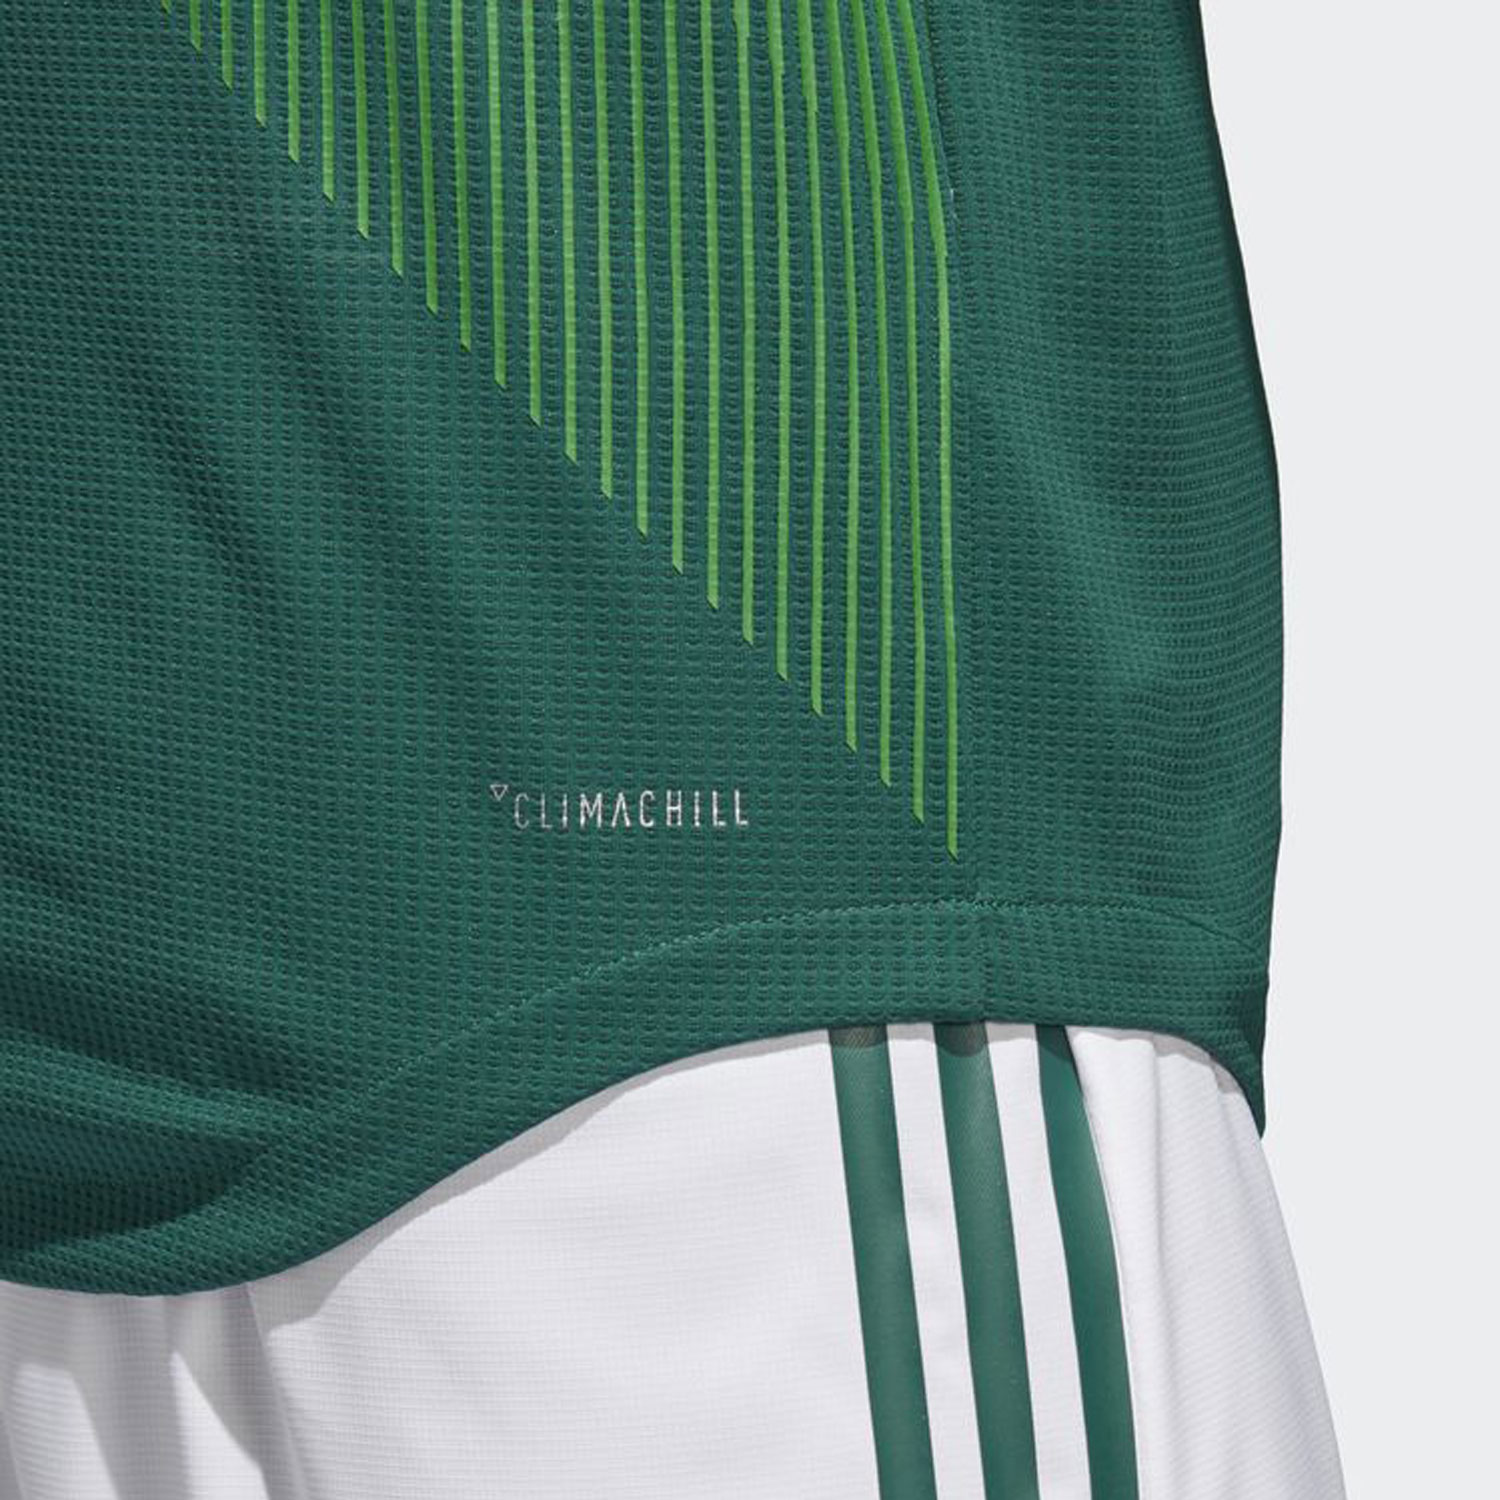 f98d77643 adidas Mexico 2018 World Cup Home Authentic Jersey